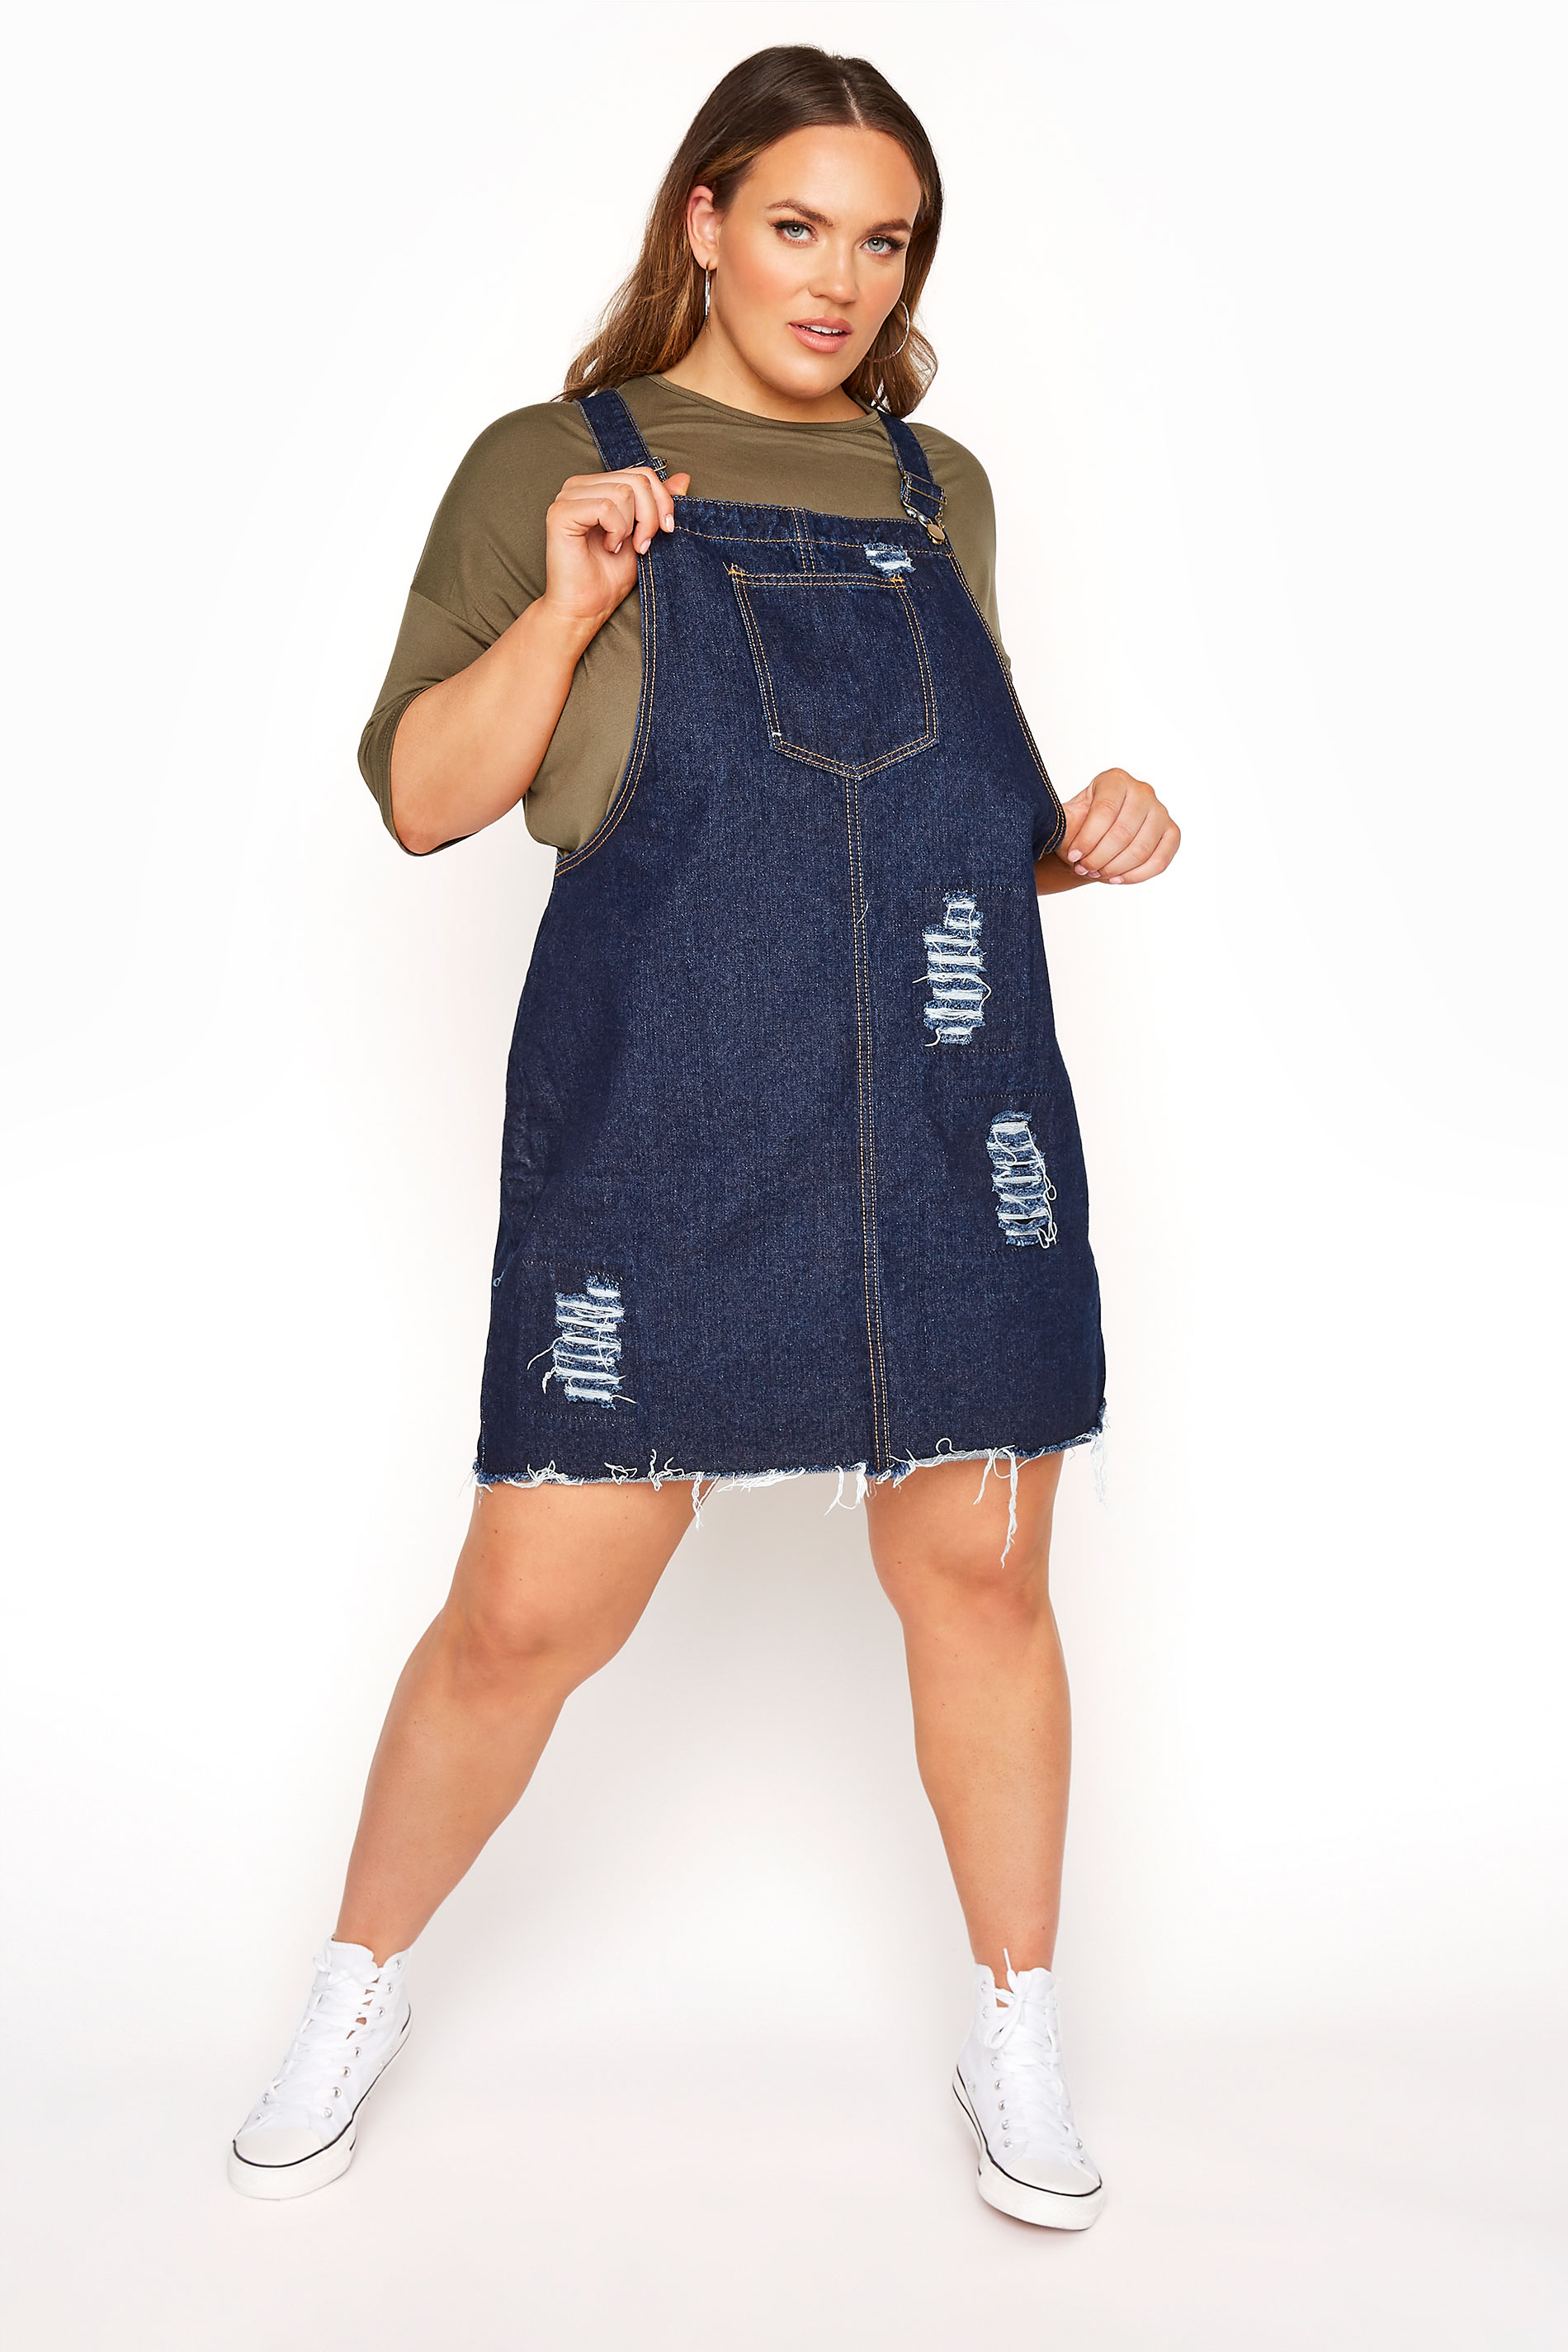 LIMITED COLLECTION Dark Blue Distressed Pinafore Dress_A.jpg